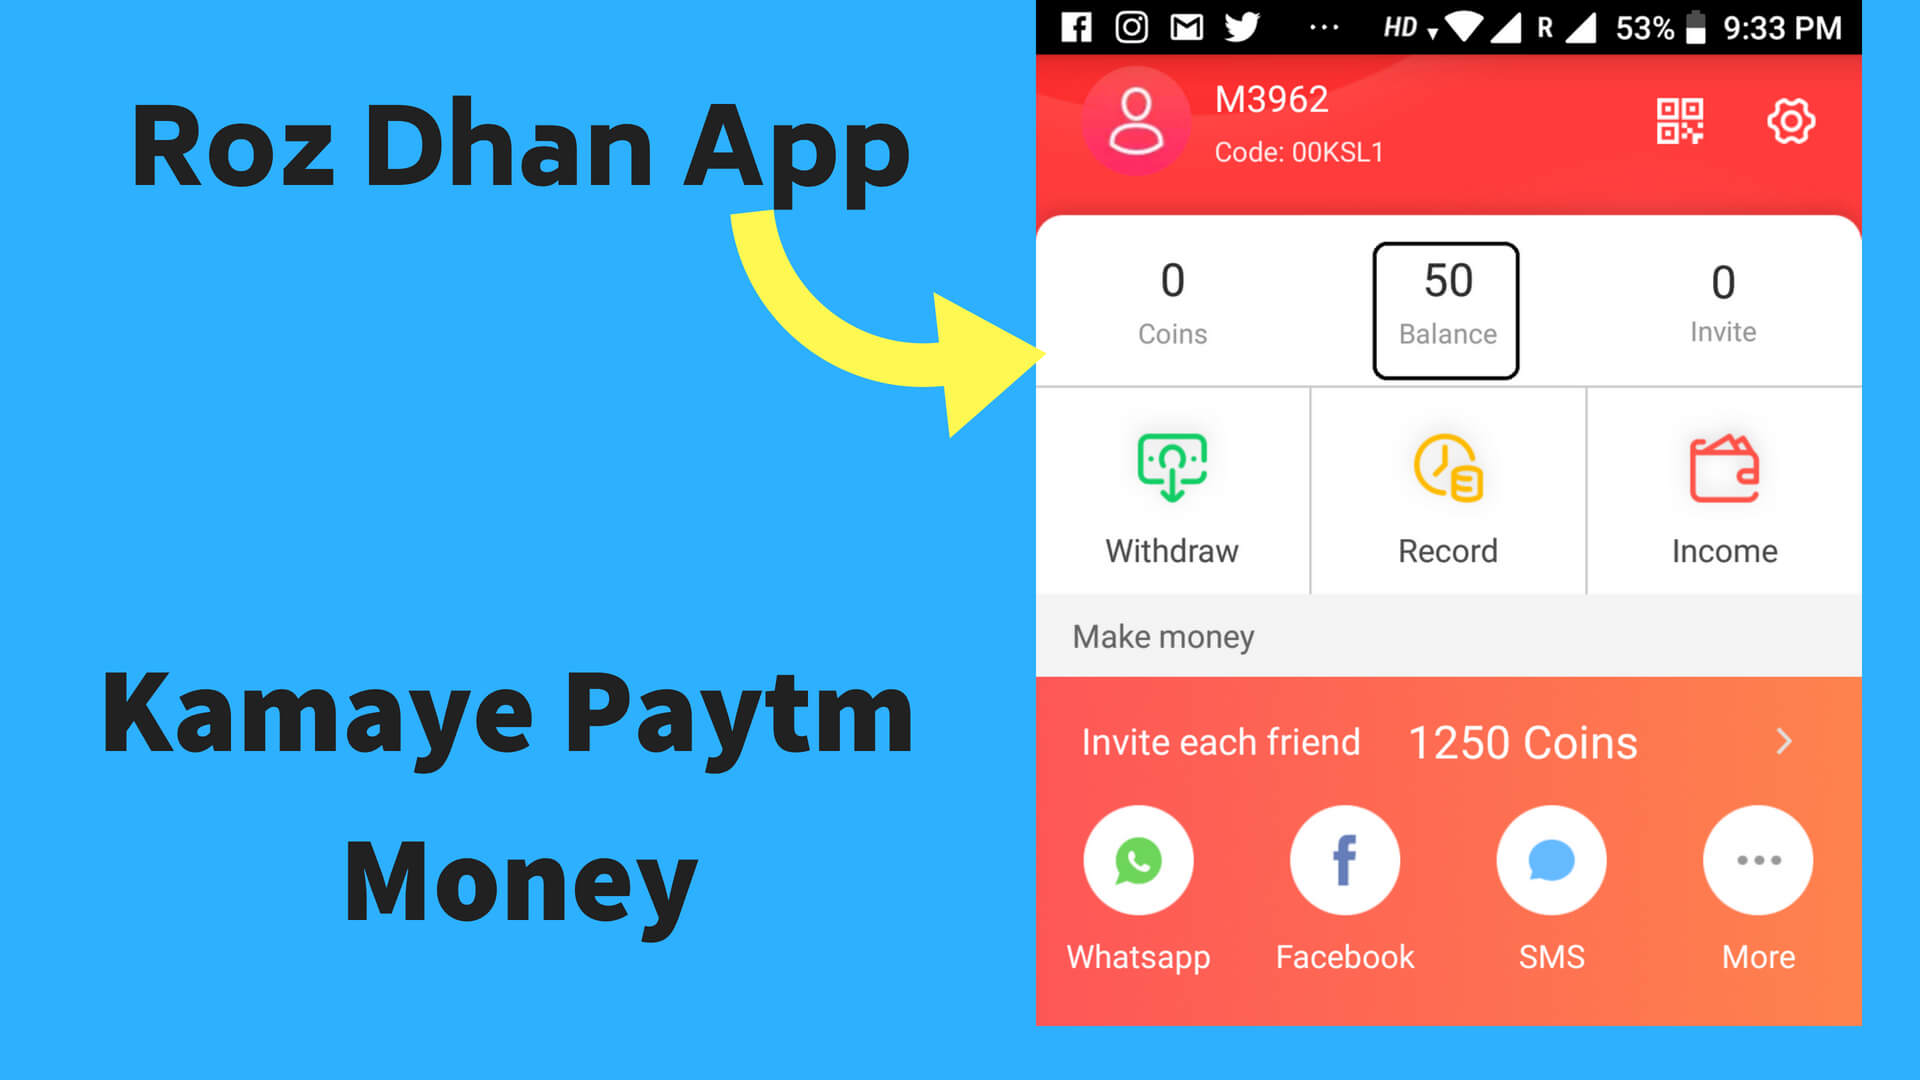 Roz Dhan App Review